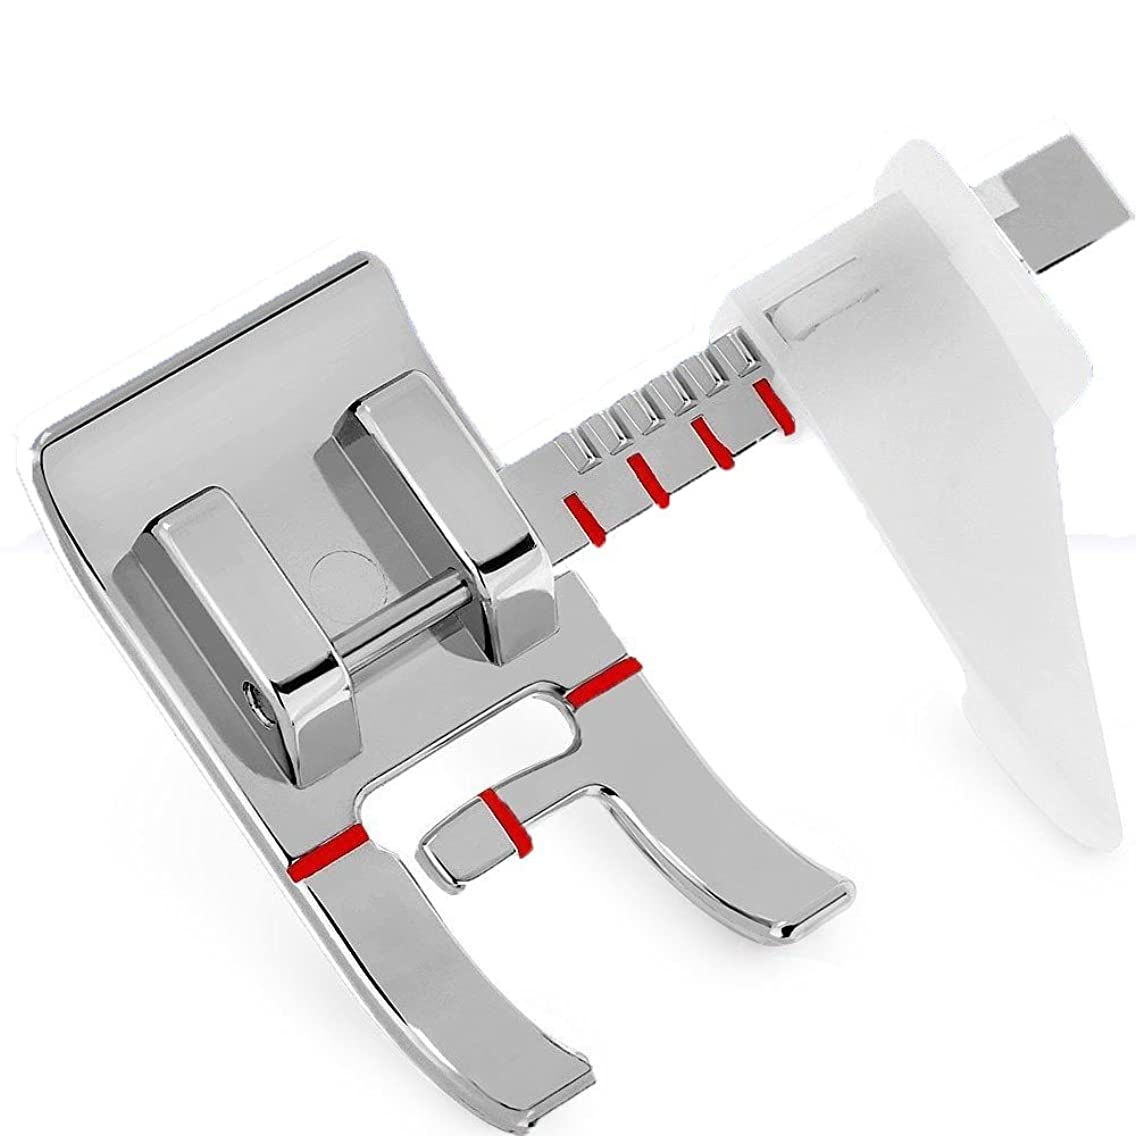 E-SideStep Adjustable Guide Sewing Machine Presser Foot .Fits All Low Shank Snap-On Singer, Brother, Babylock, Euro-Pro, Janome, Kenmore, White, Juki, New Home, Simplicity, Elna and MoreElna and More